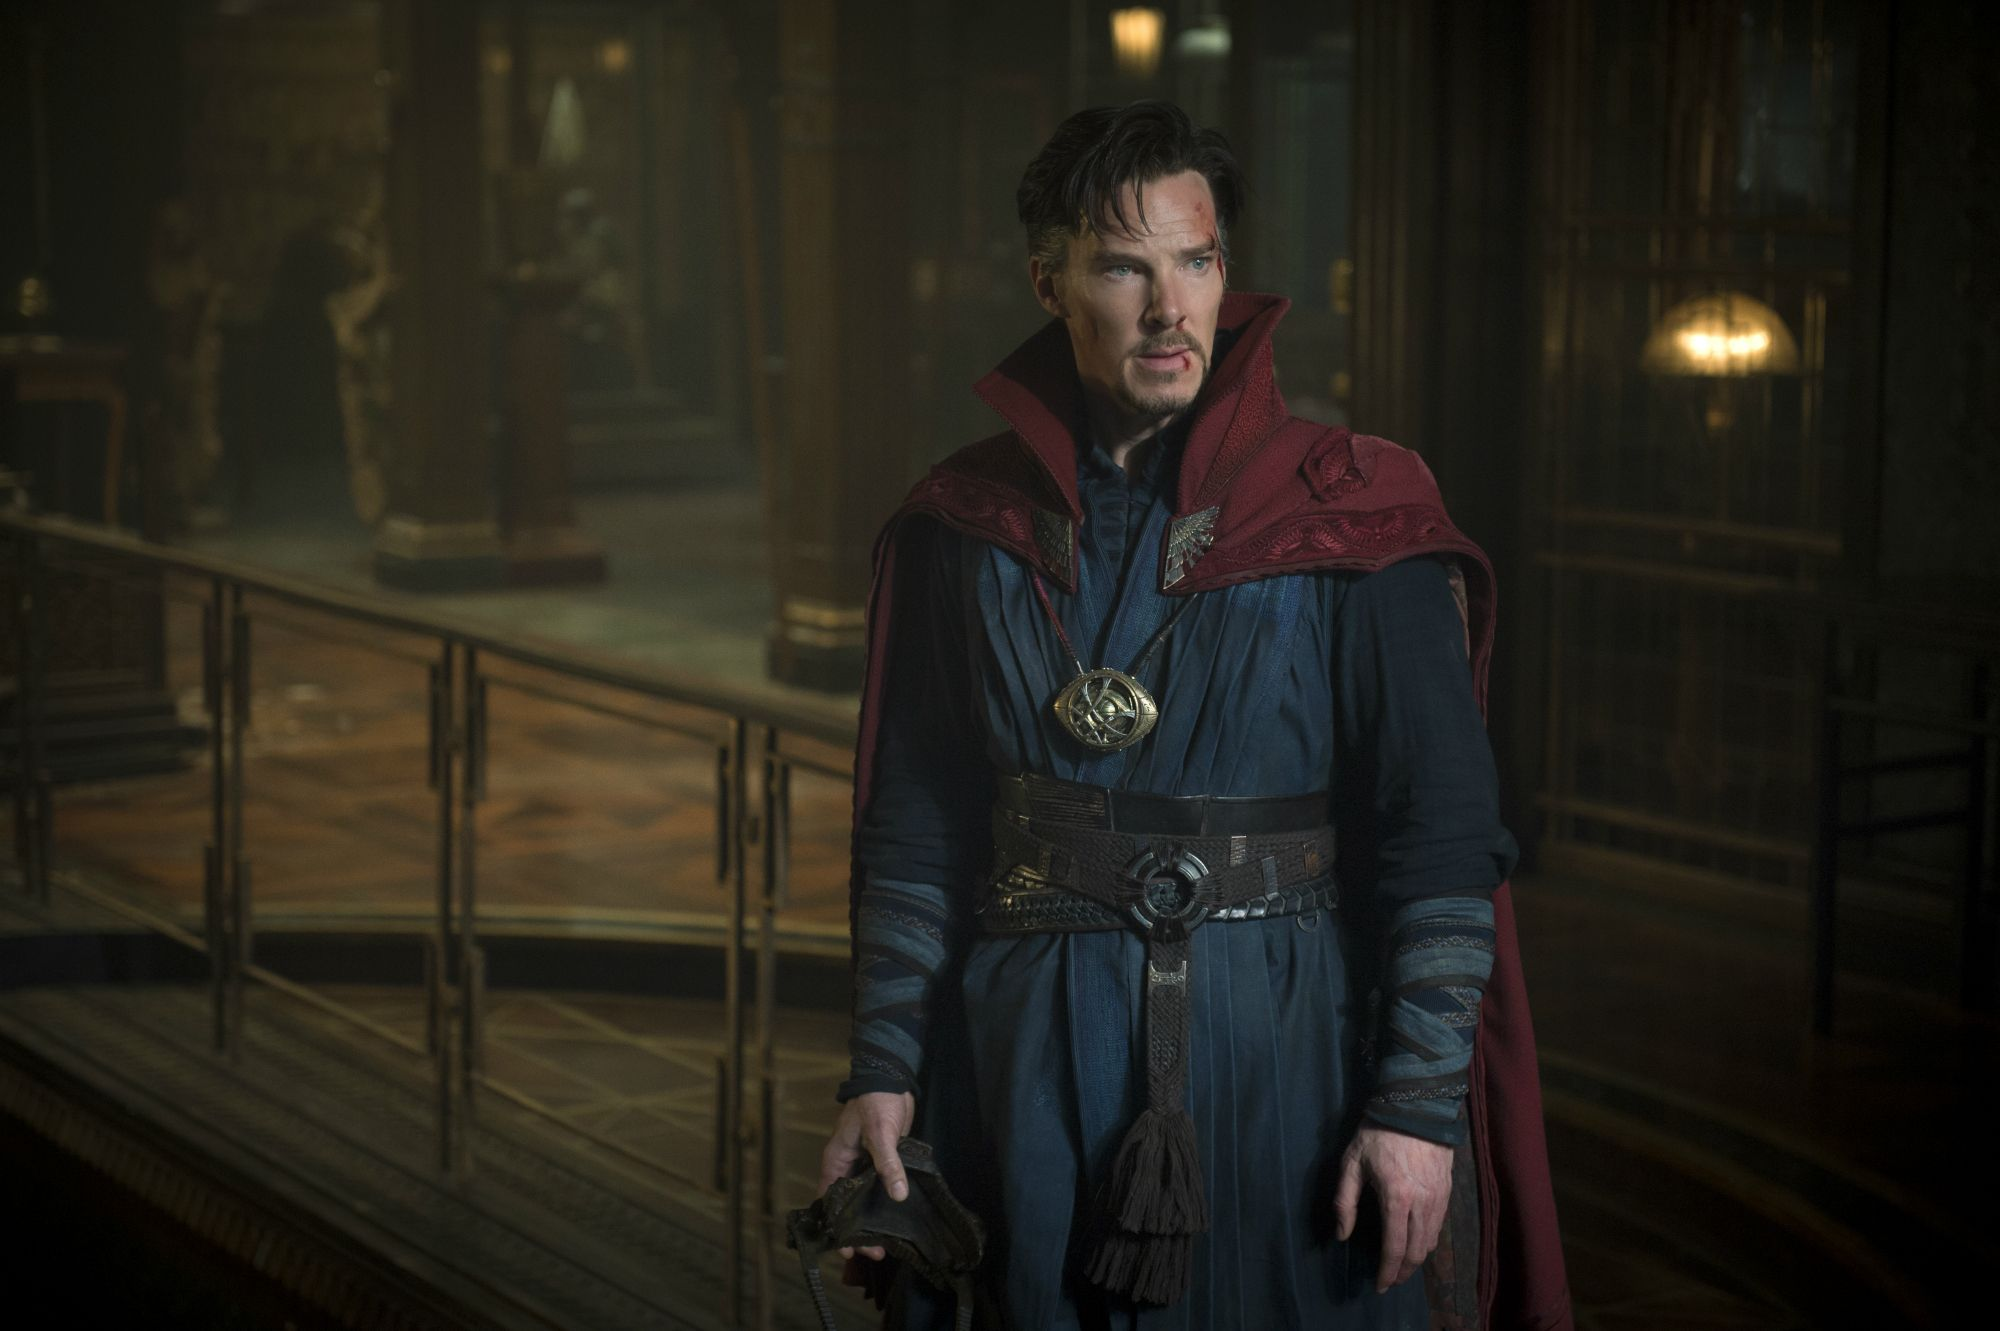 Doctor Strange Marvel Movie Wallpapers Widescreen Cinema: Review: Marvel's 'Doctor Strange' Is Trippy But Is It